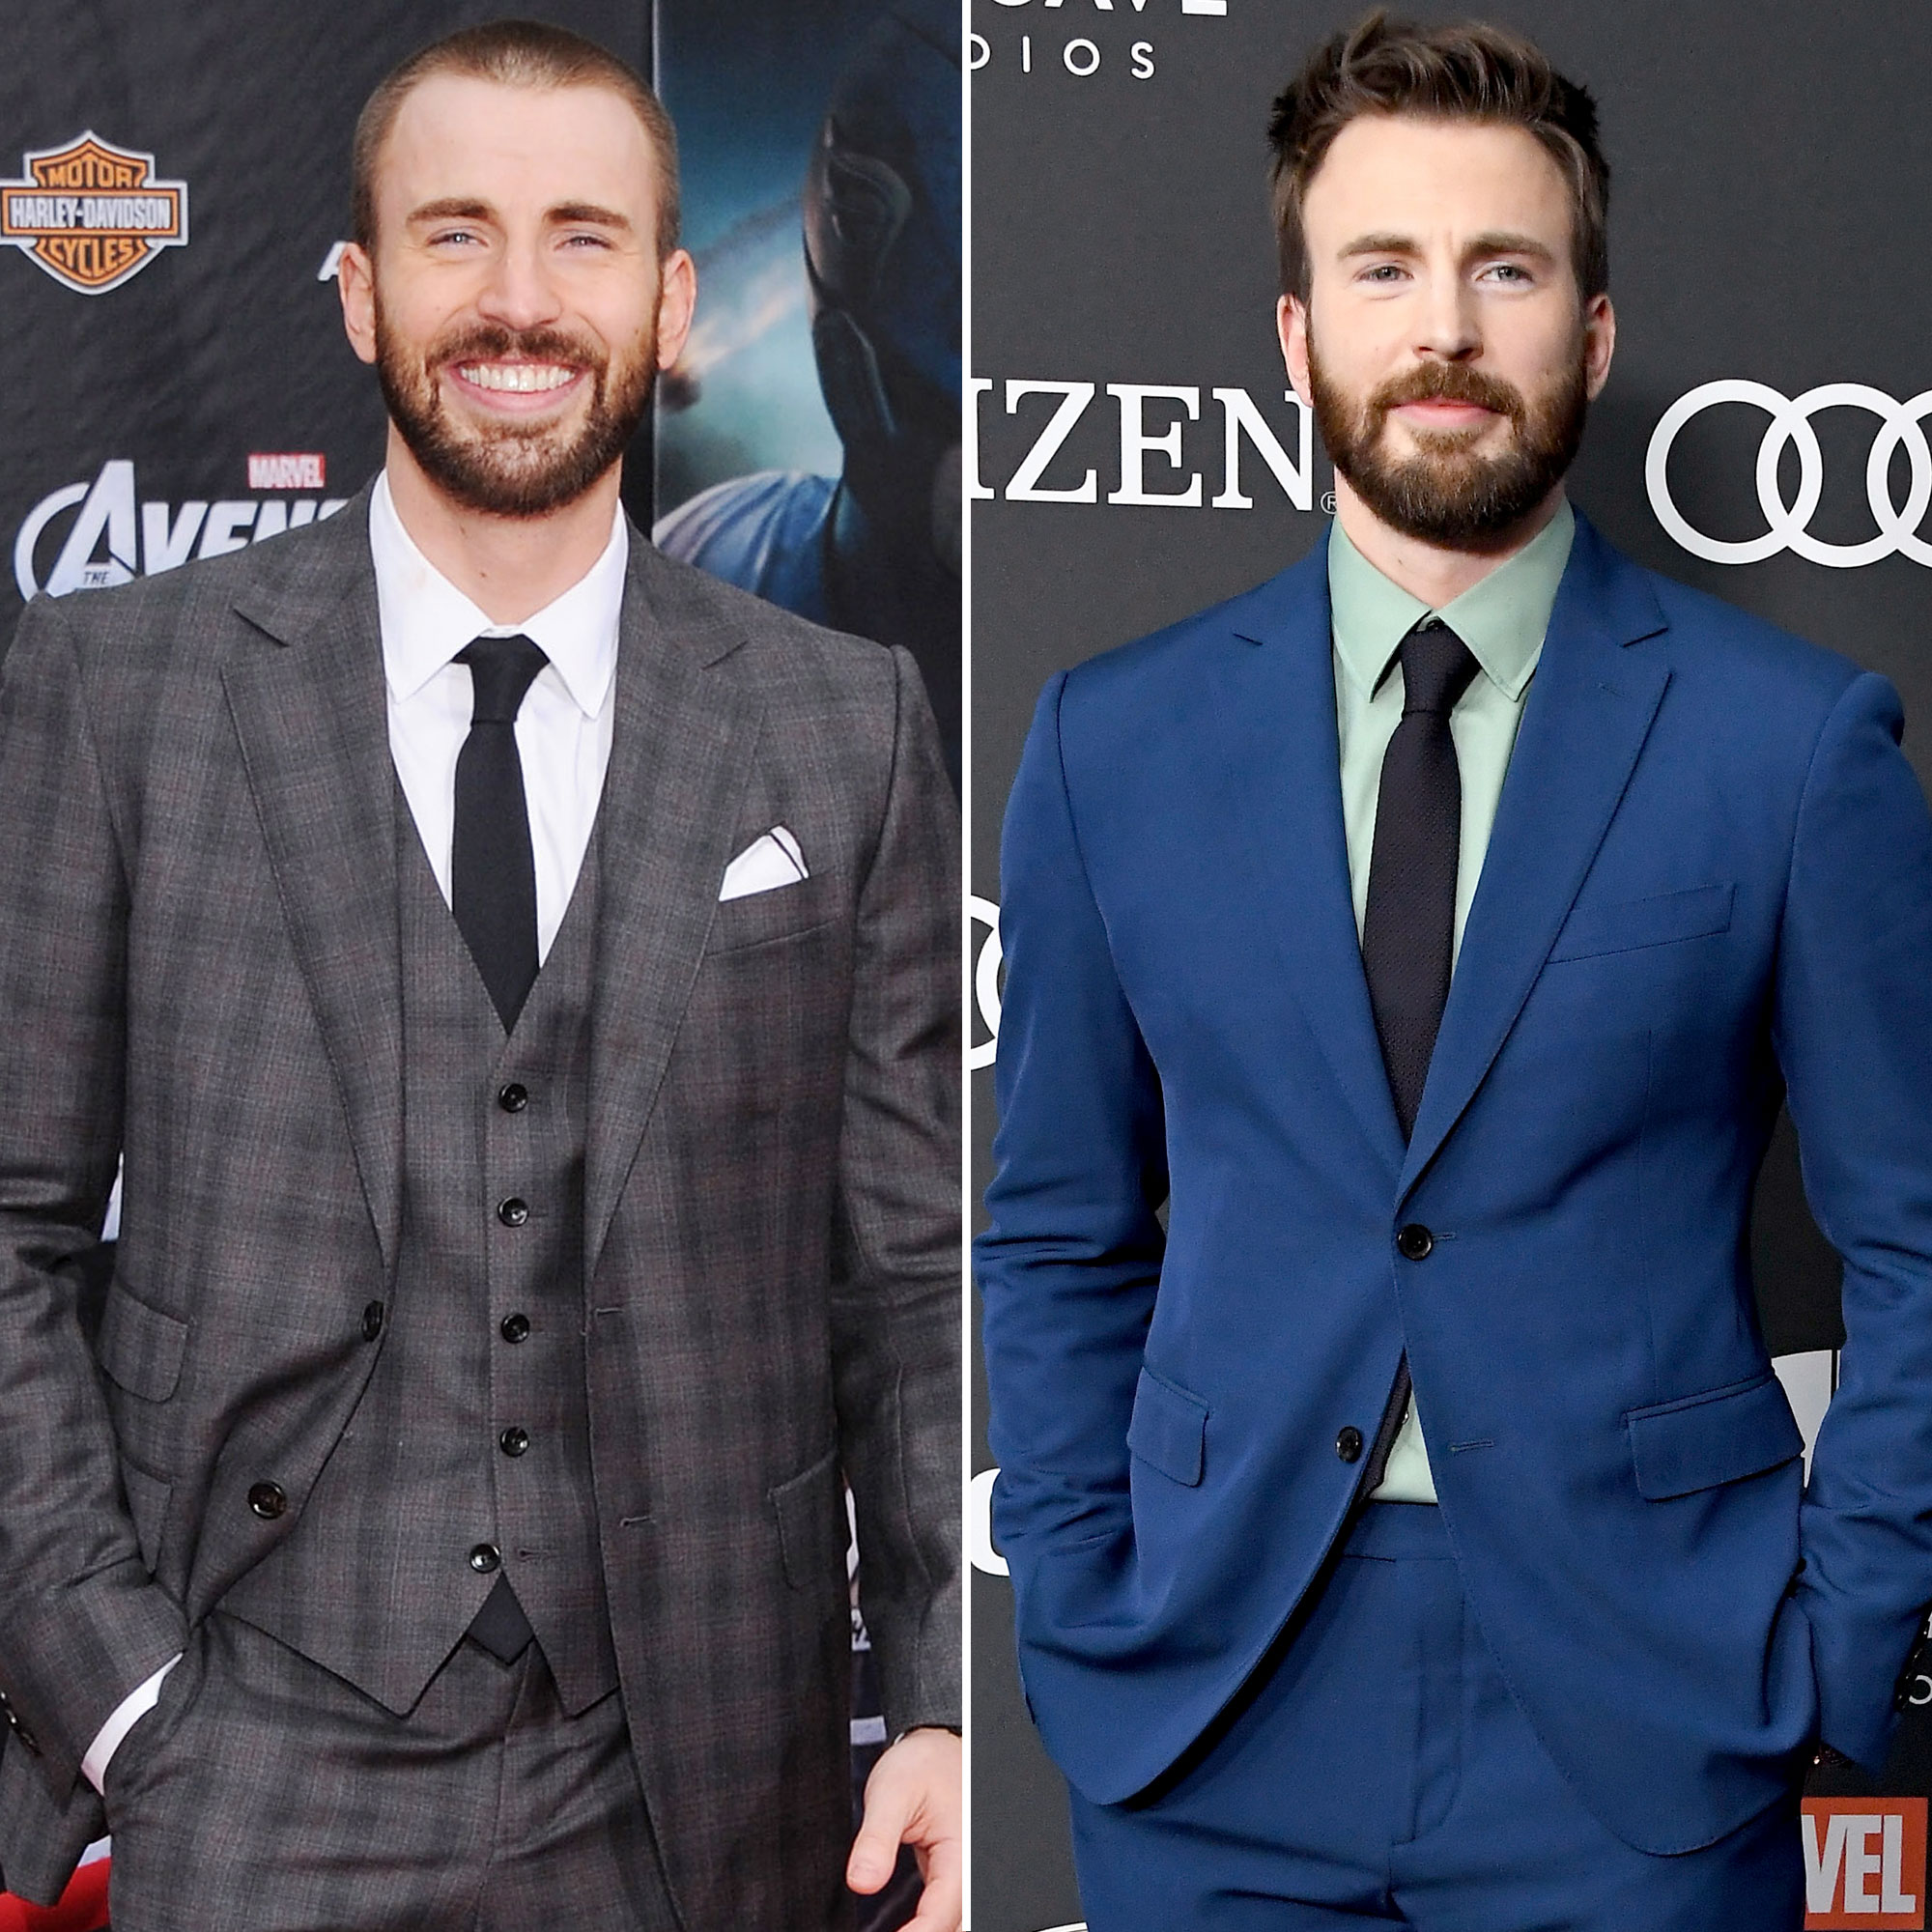 Chris Evans Avengers Premiere First Super Red Carpet to Their Last - Evans was no stranger to the superhero game when he took on the role of Captain America, having starred in Fantastic Four back in the mid-aughts, but he was a stranger to a full head of hair: He once rocked a nearly-shaven head!